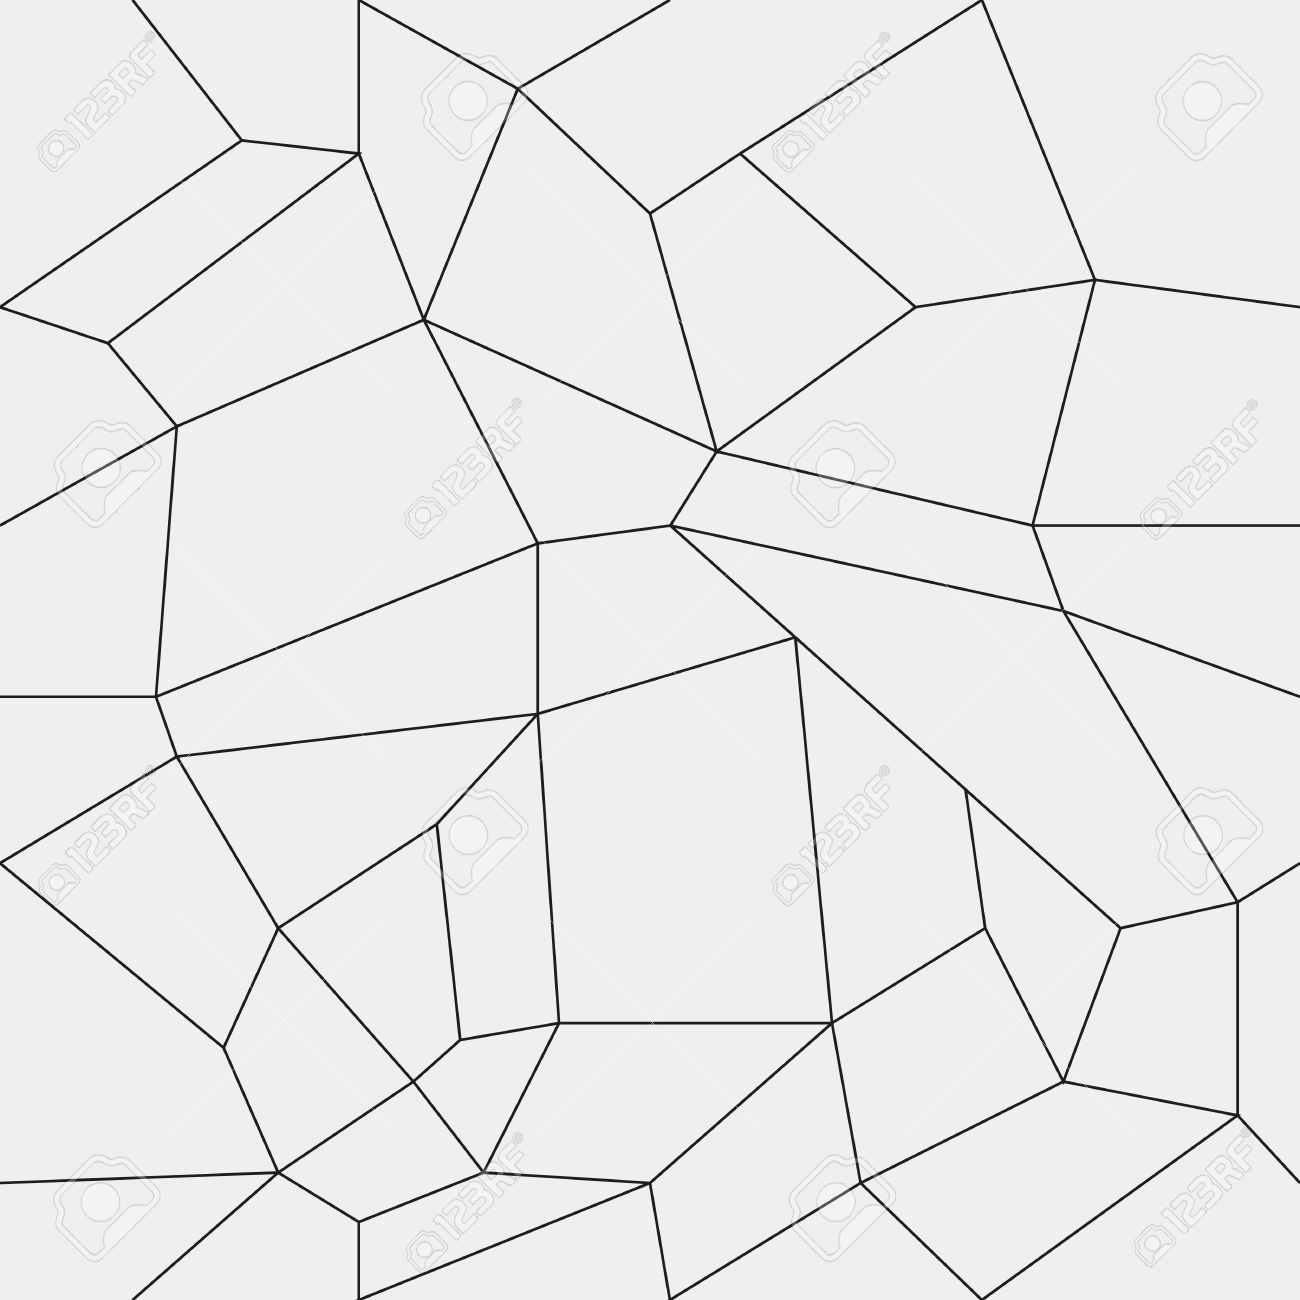 Geometric Simple Black And White Minimalistic Pattern Rectangles